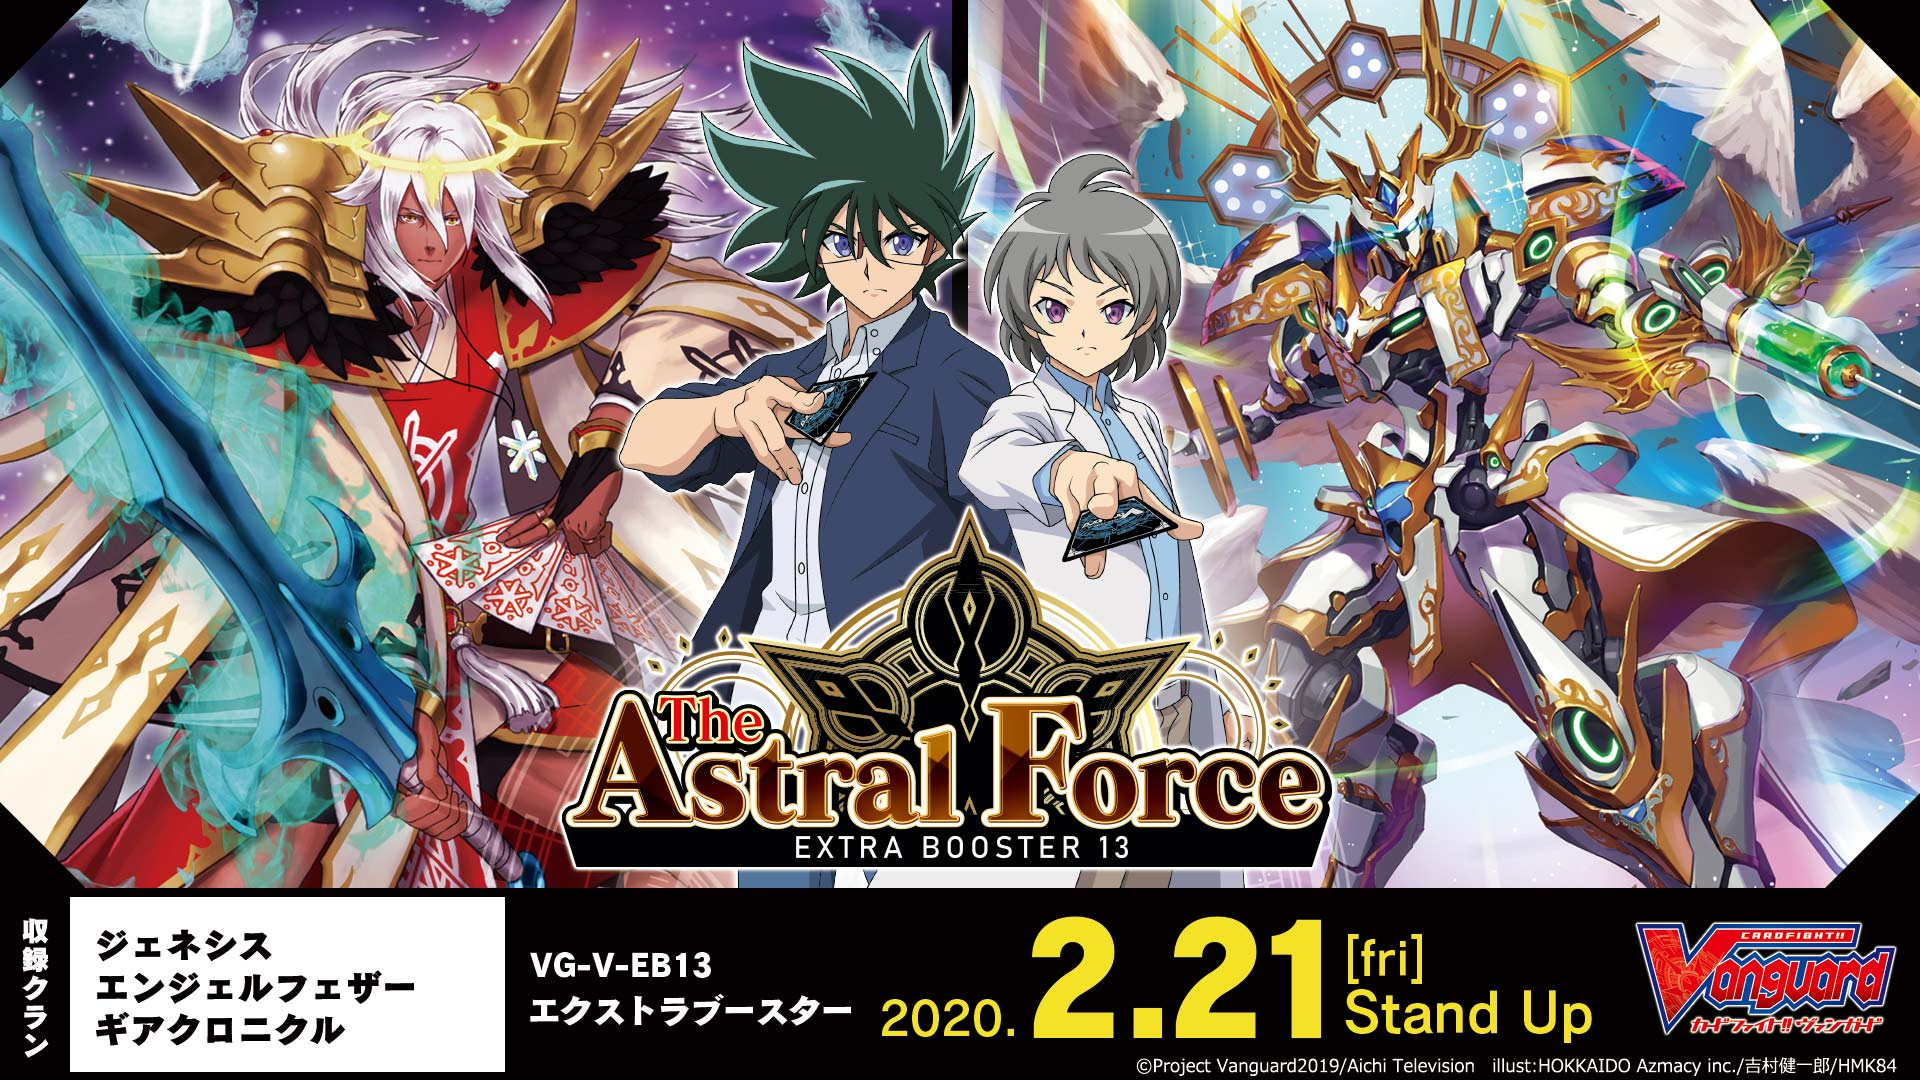 【V-EB13】「The Astral Force」